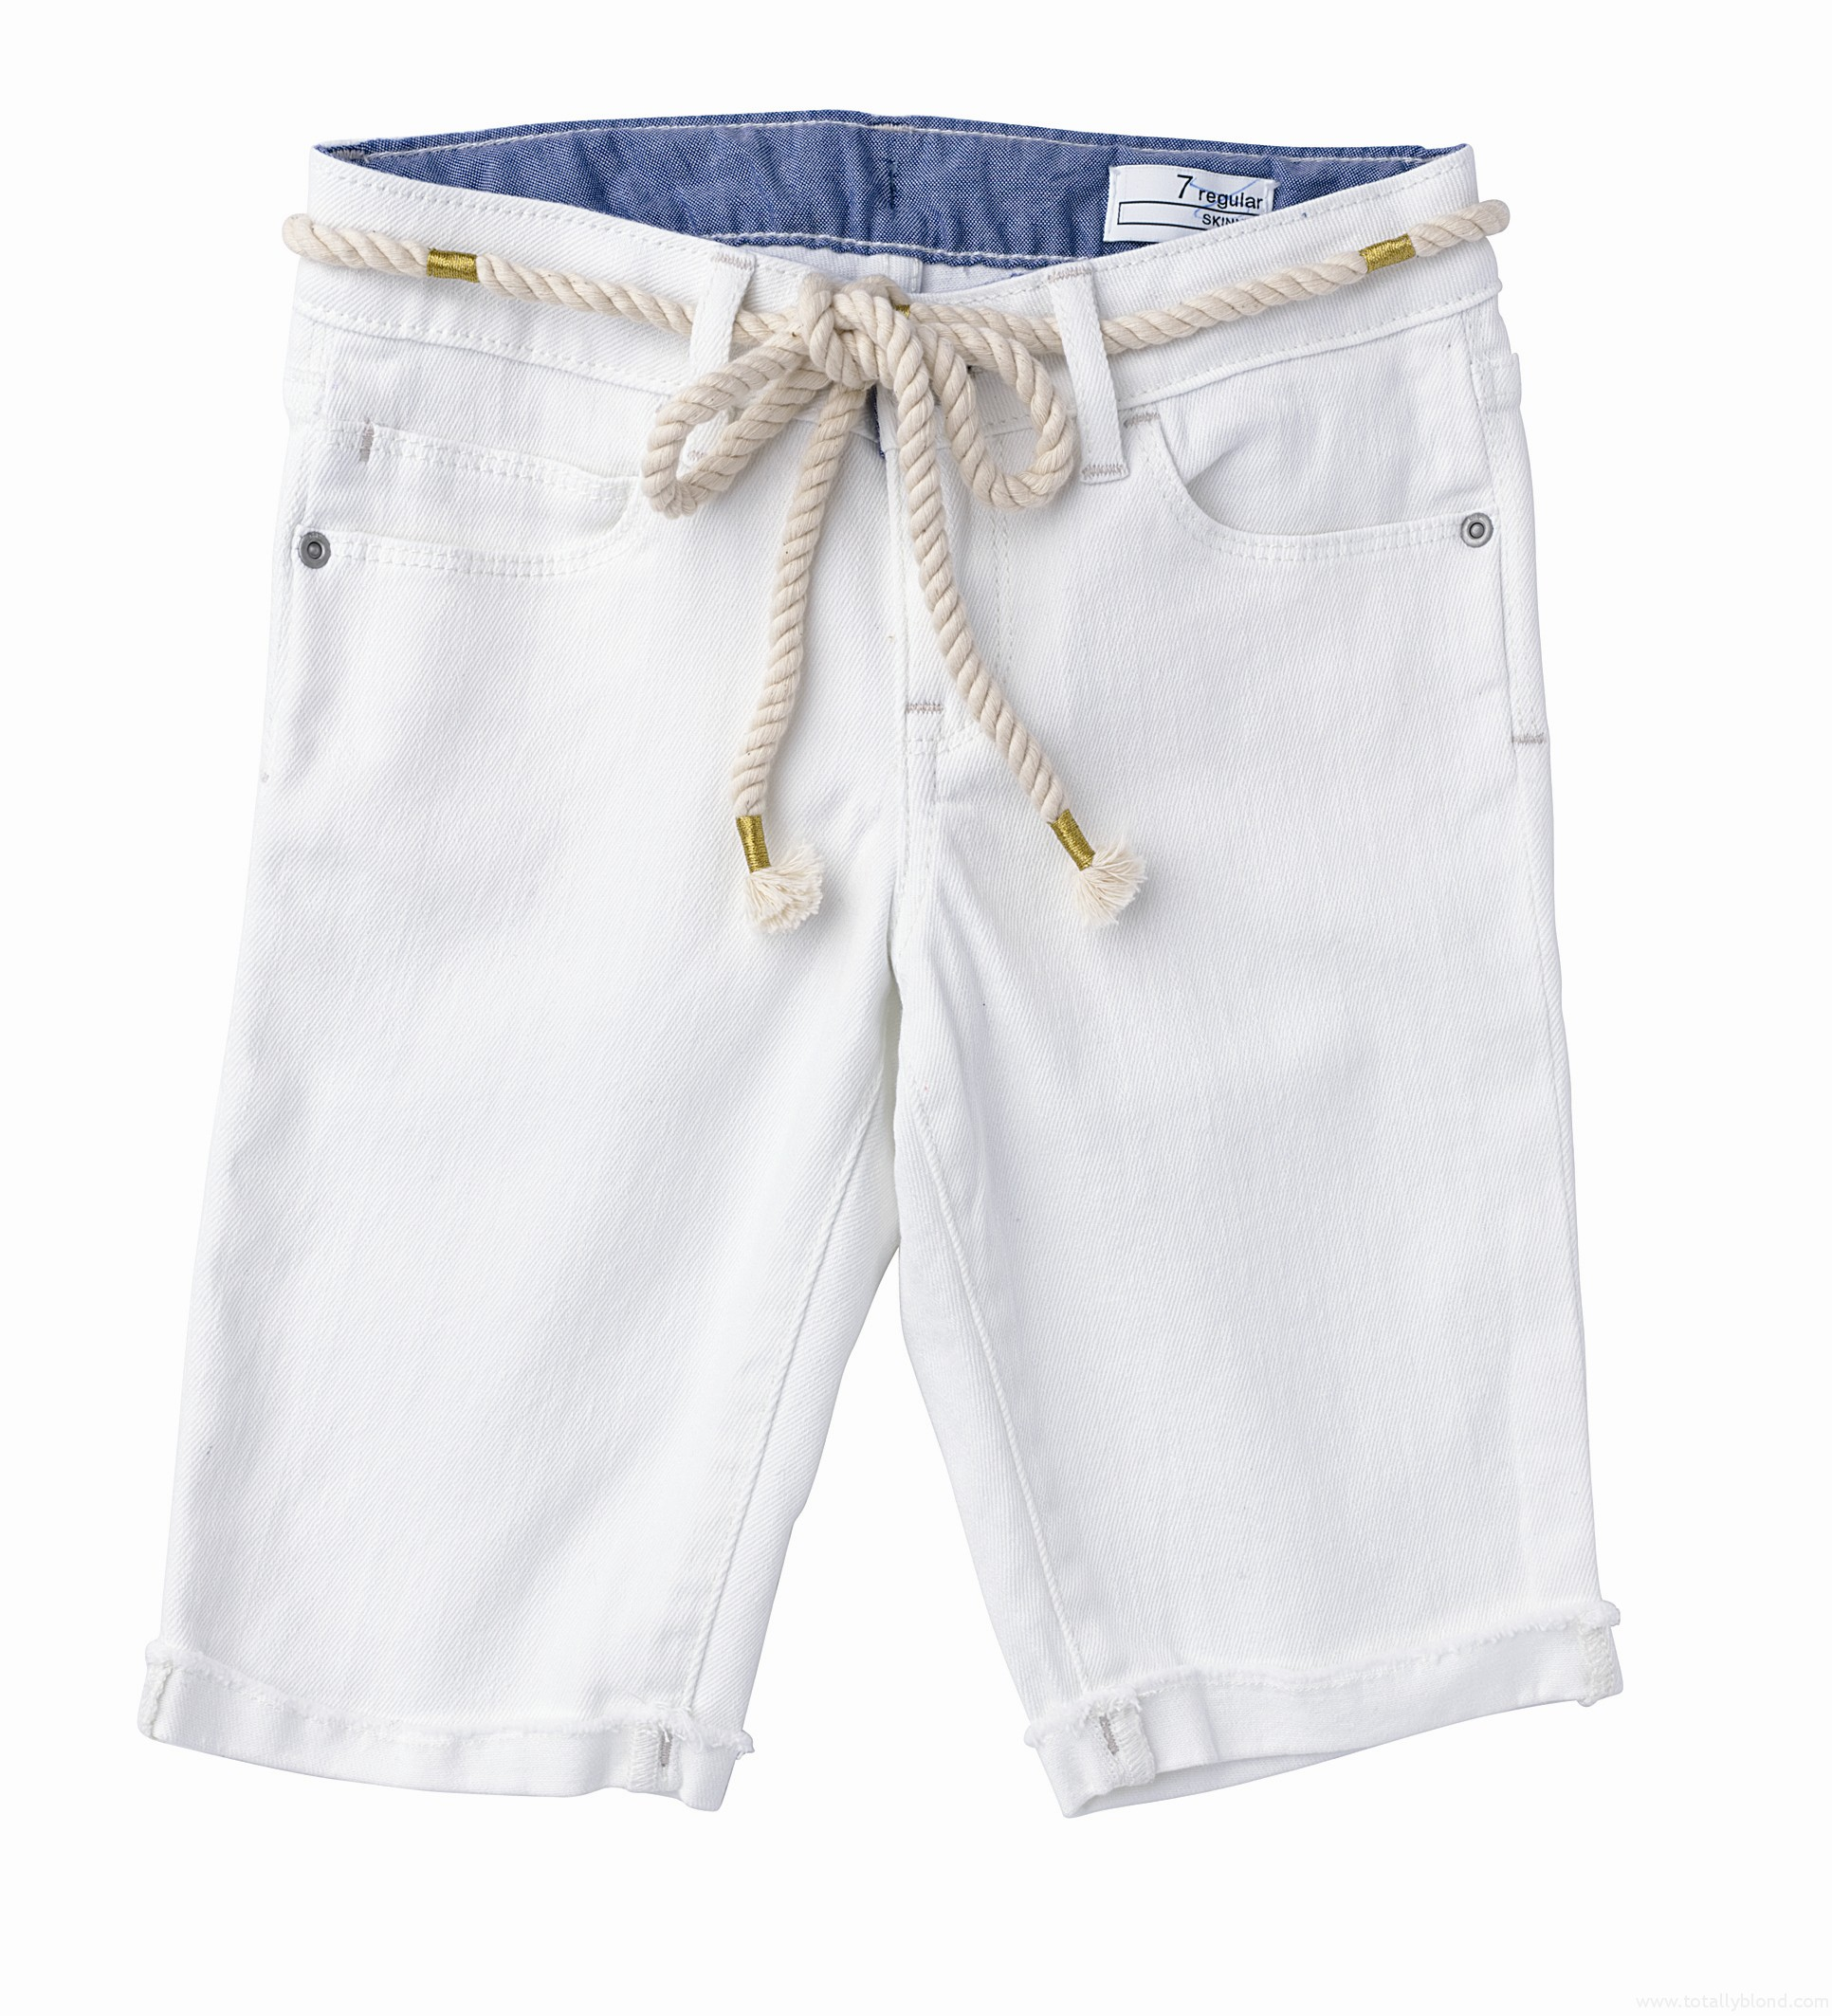 White_denim_nautical_shorts